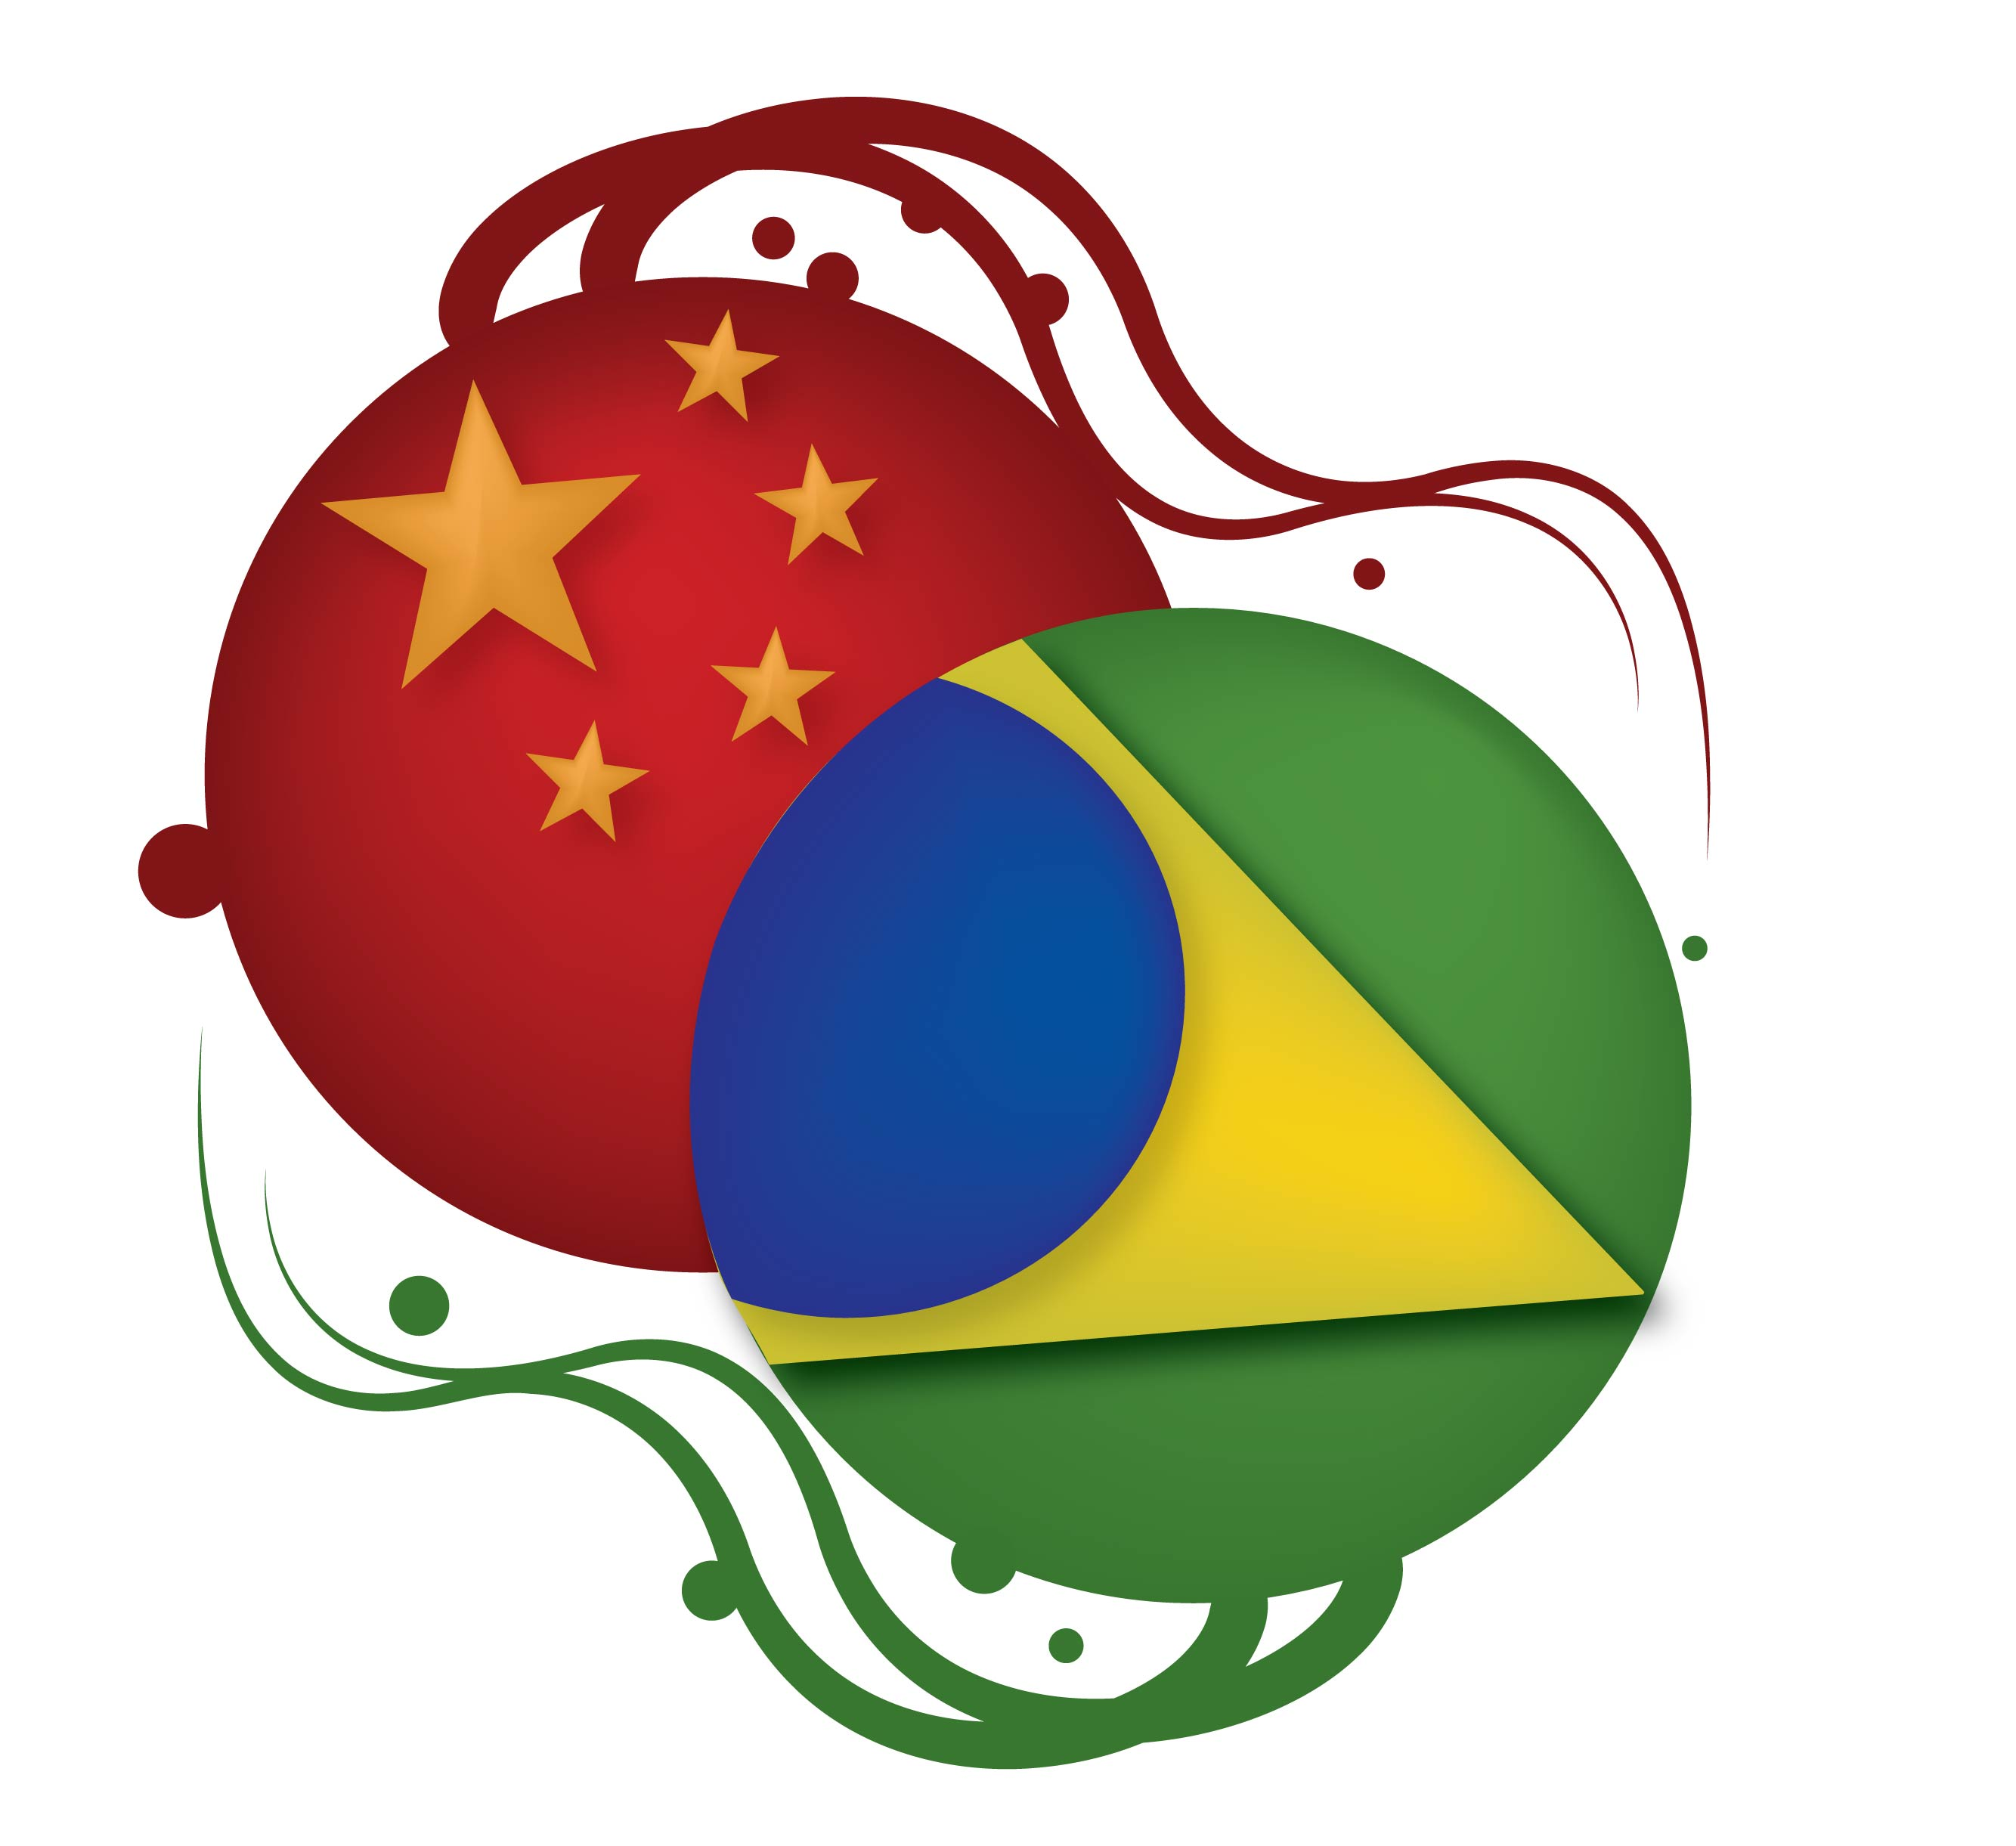 Brasil e China: perspectivas